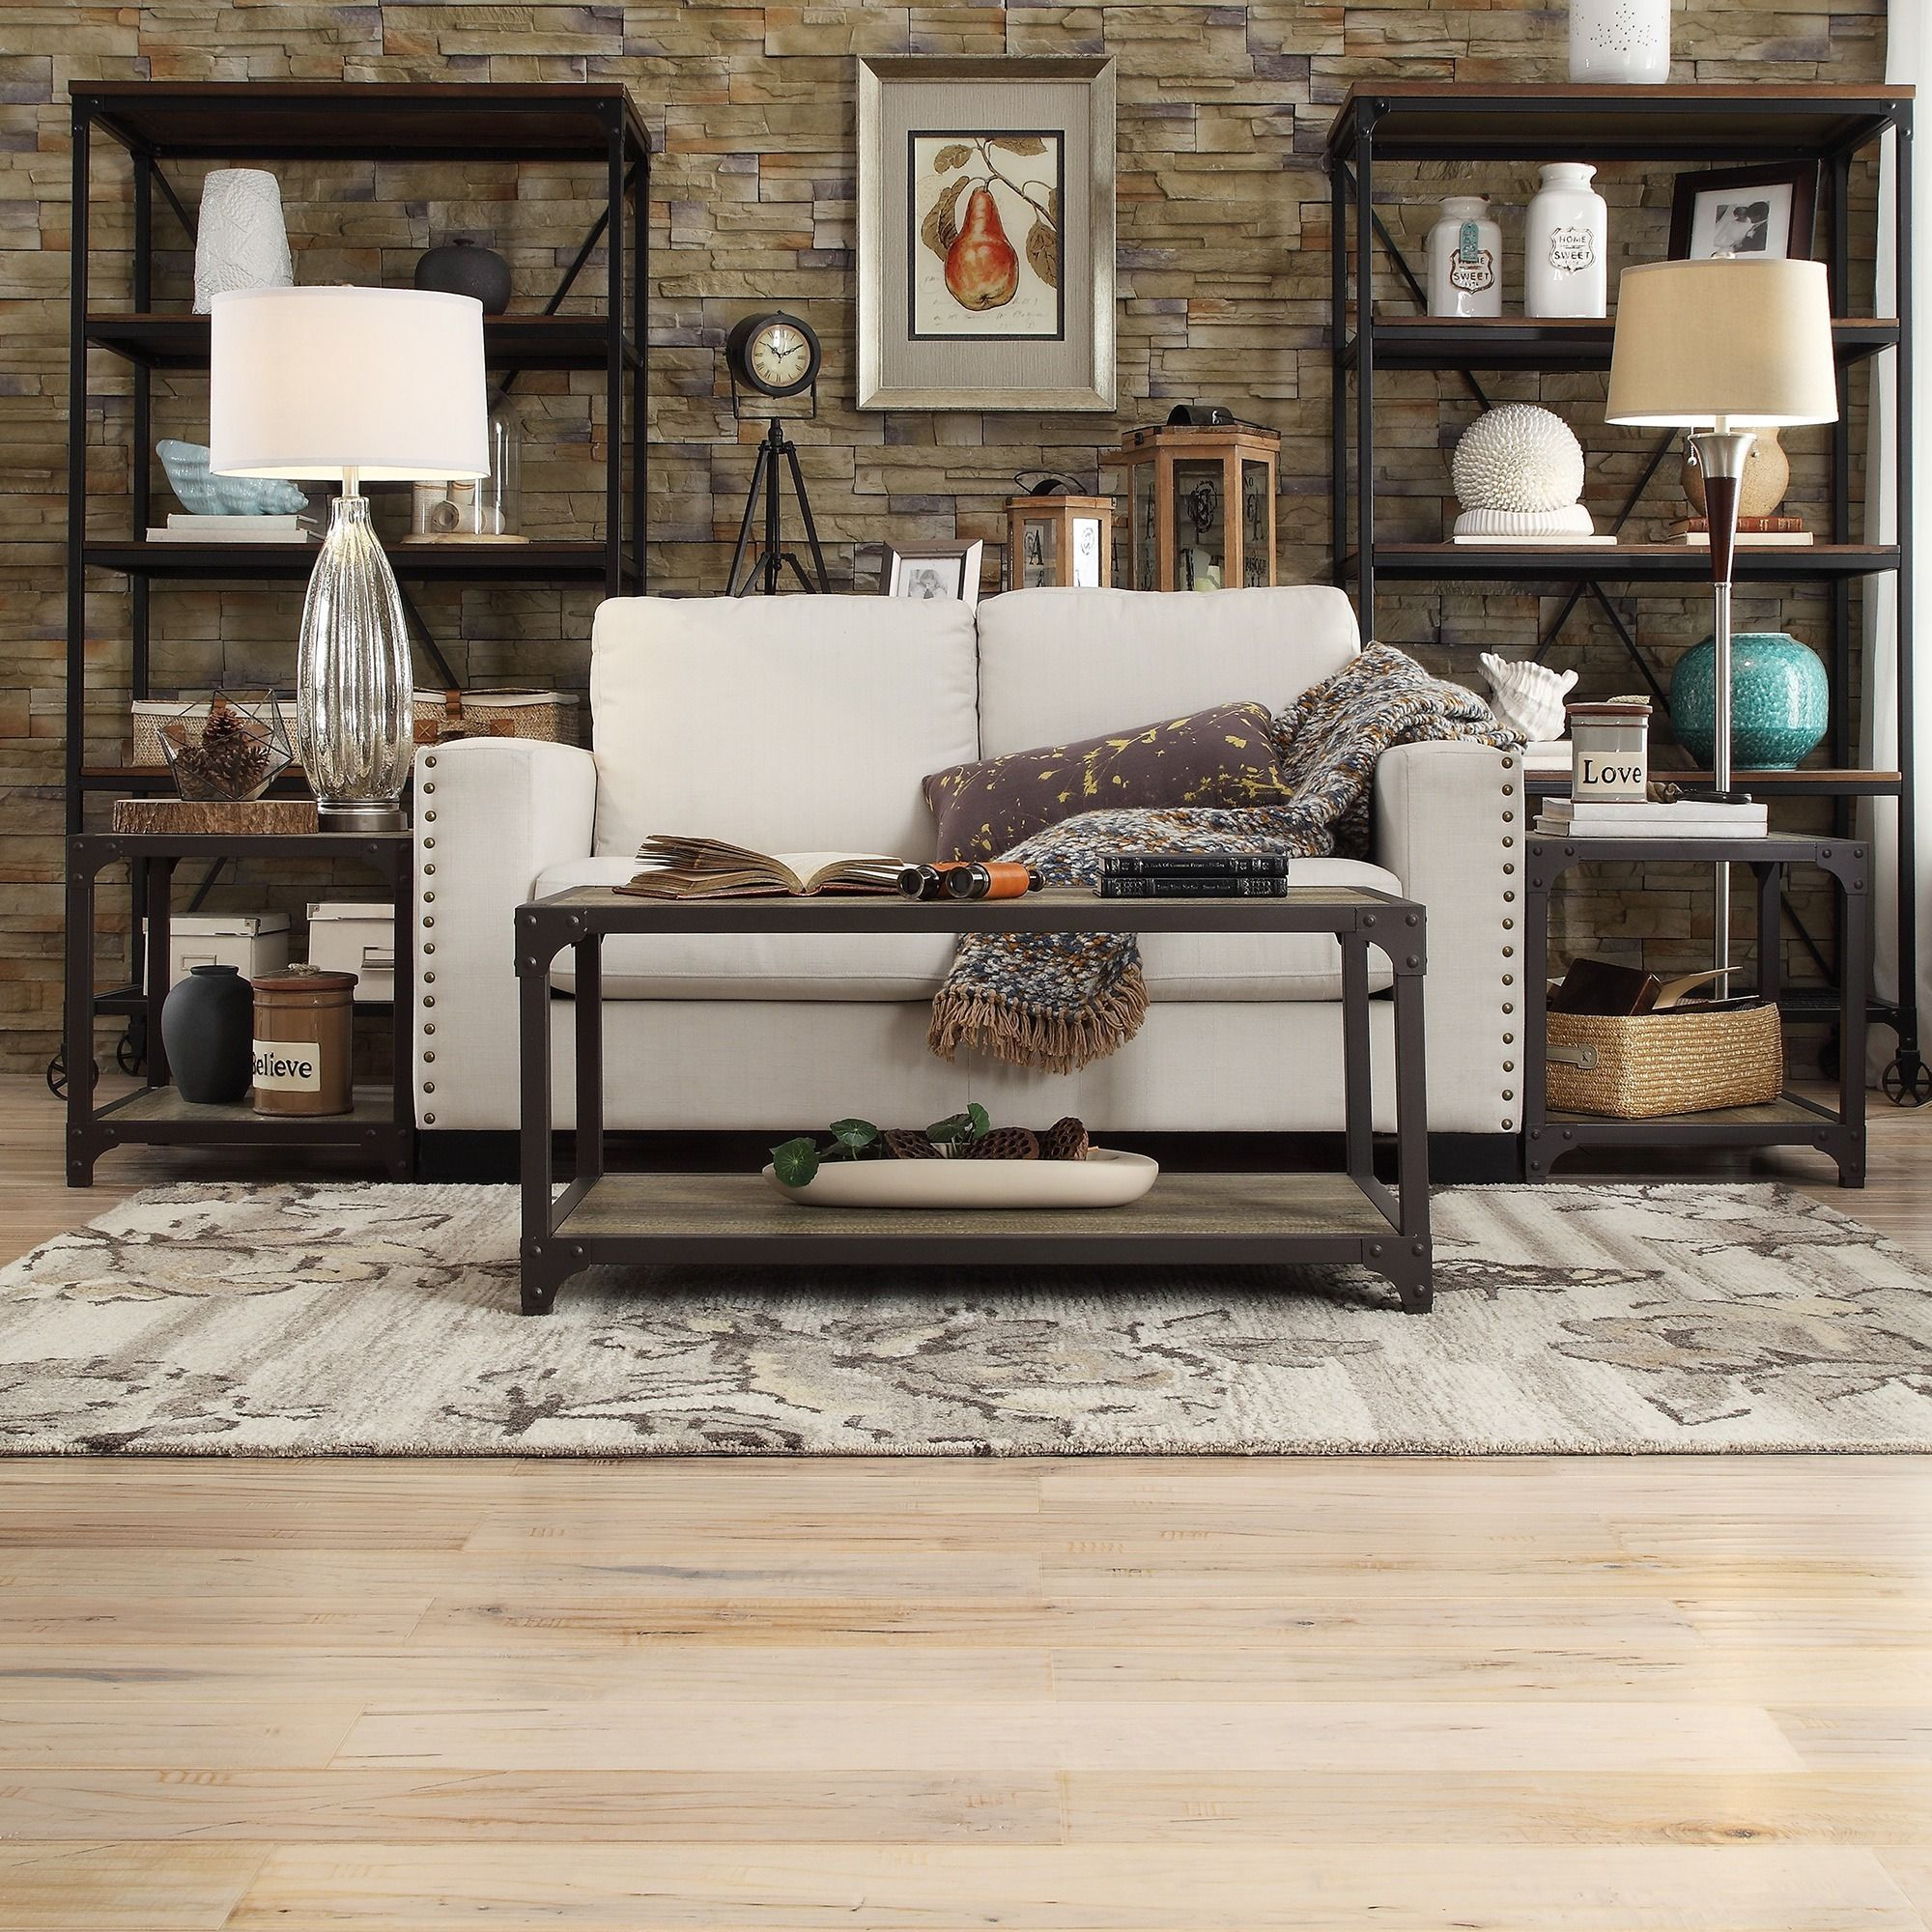 Add more layers to your living room or bedroom with this three-piece  industrial rustic